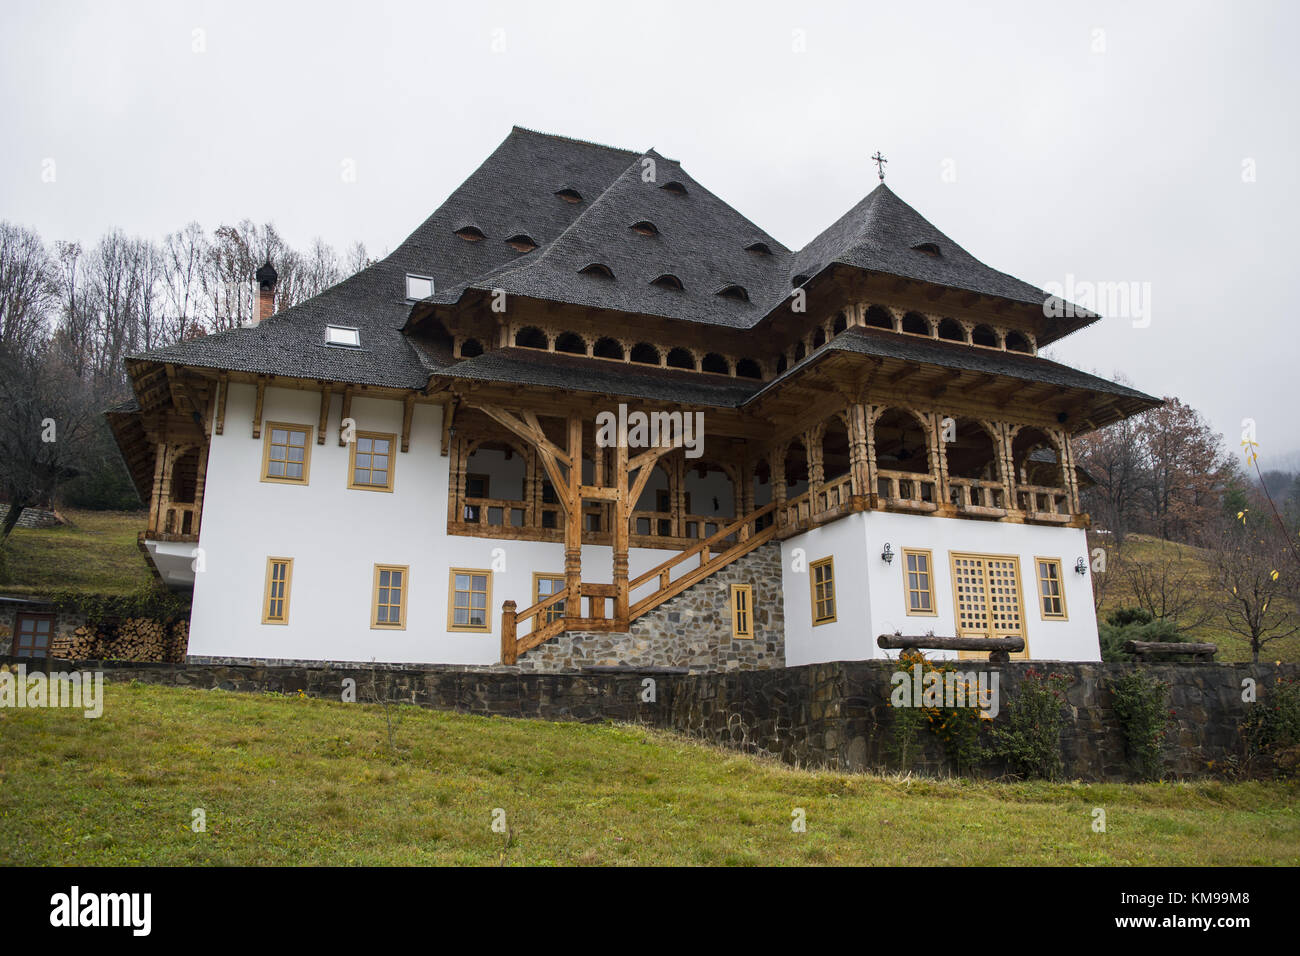 Peasant house made in maramures romania stock photo royalty free image 167391624 alamy - Houses maramures wood ...